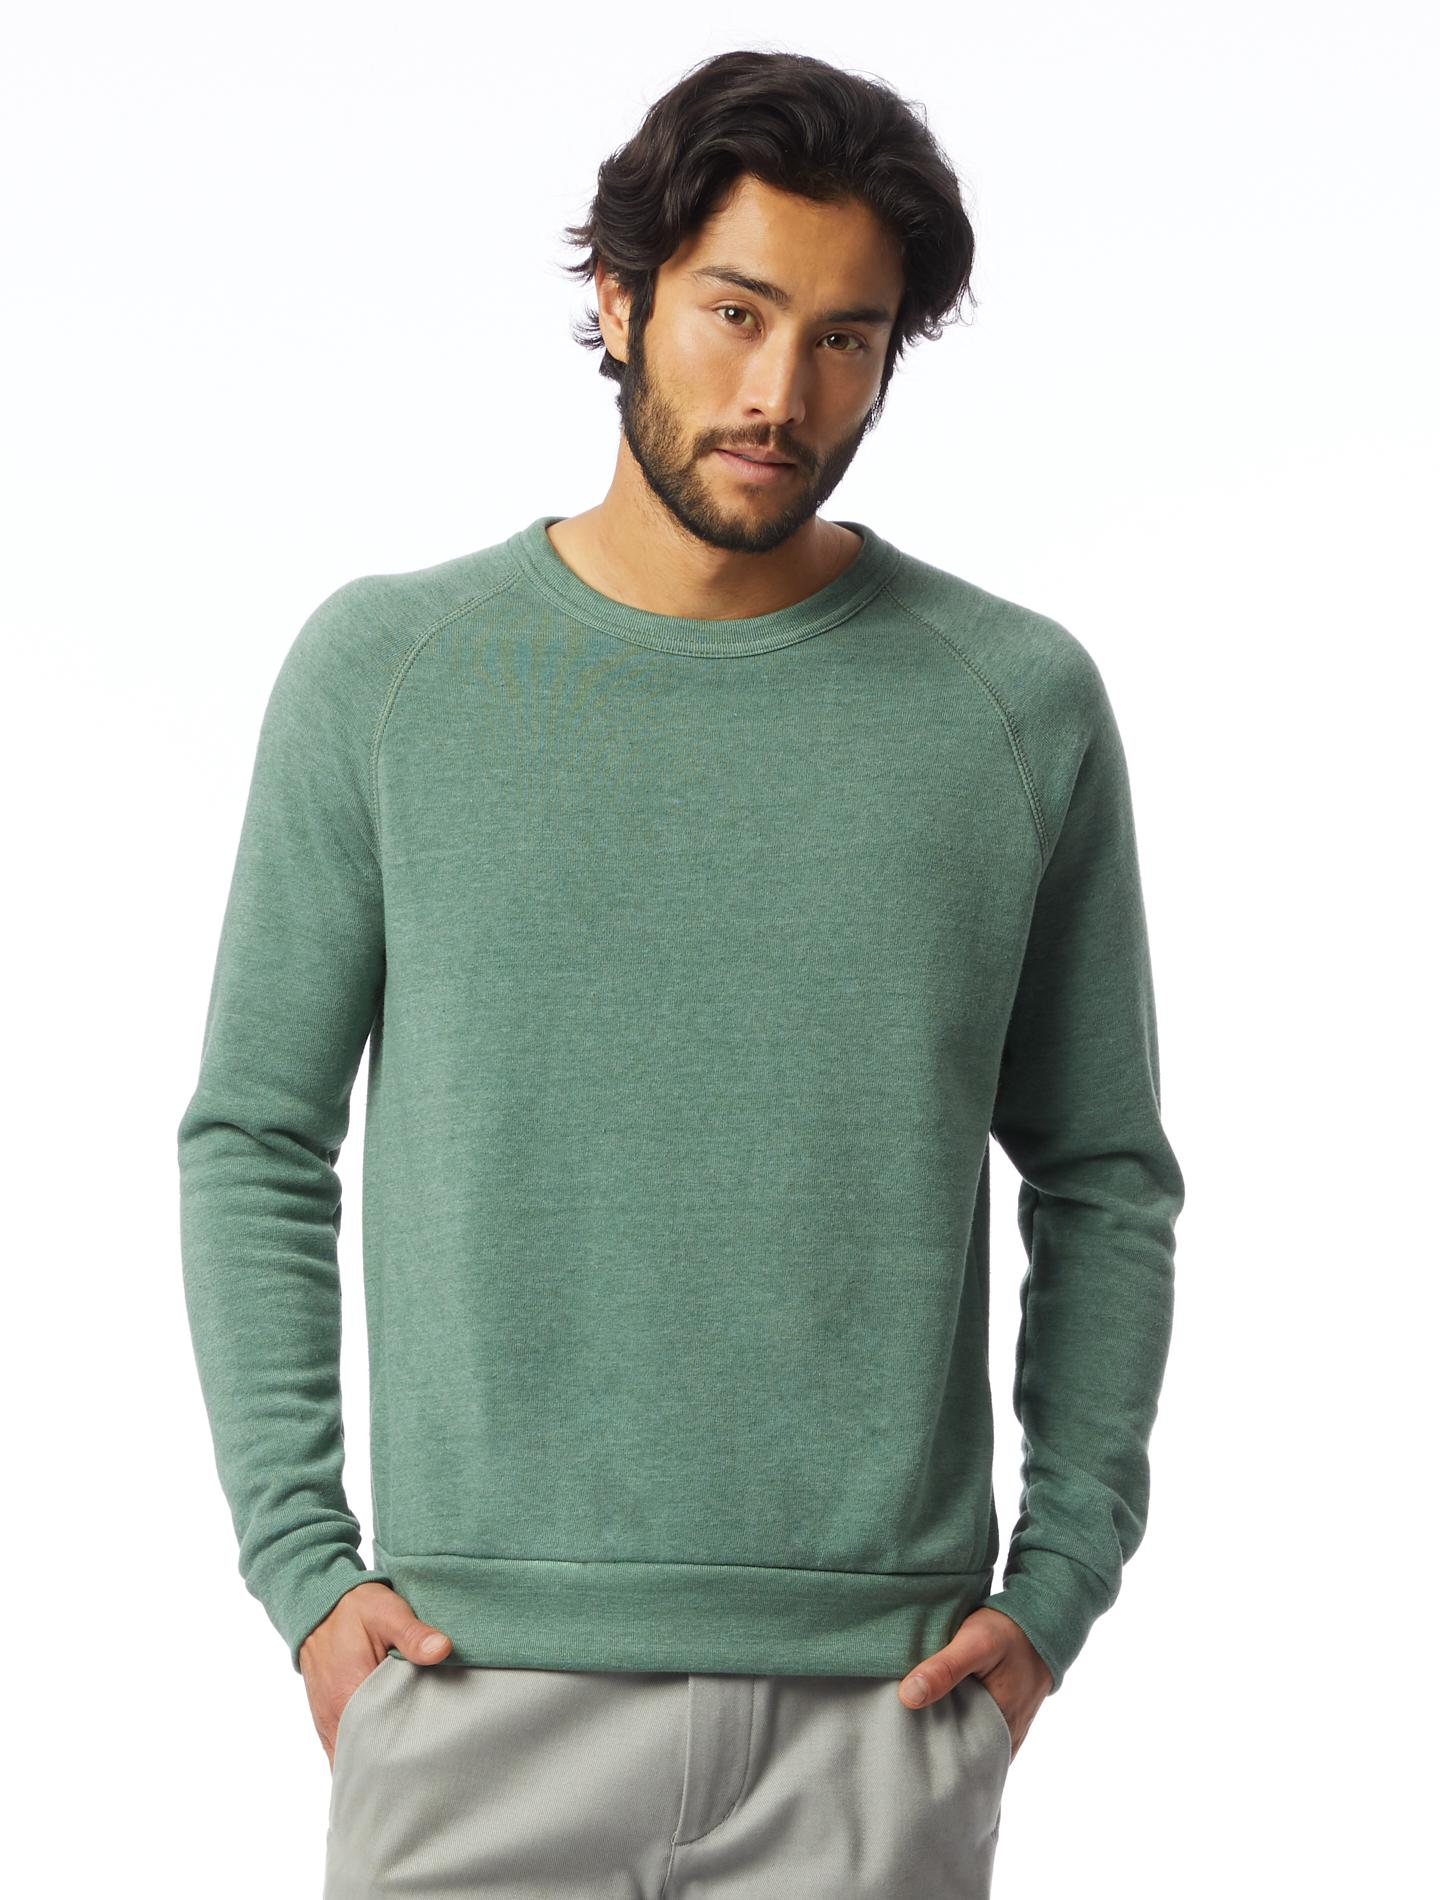 951344af5ad0 Lyst - Alternative Apparel Champ Eco-fleece Sweatshirt in Green for Men